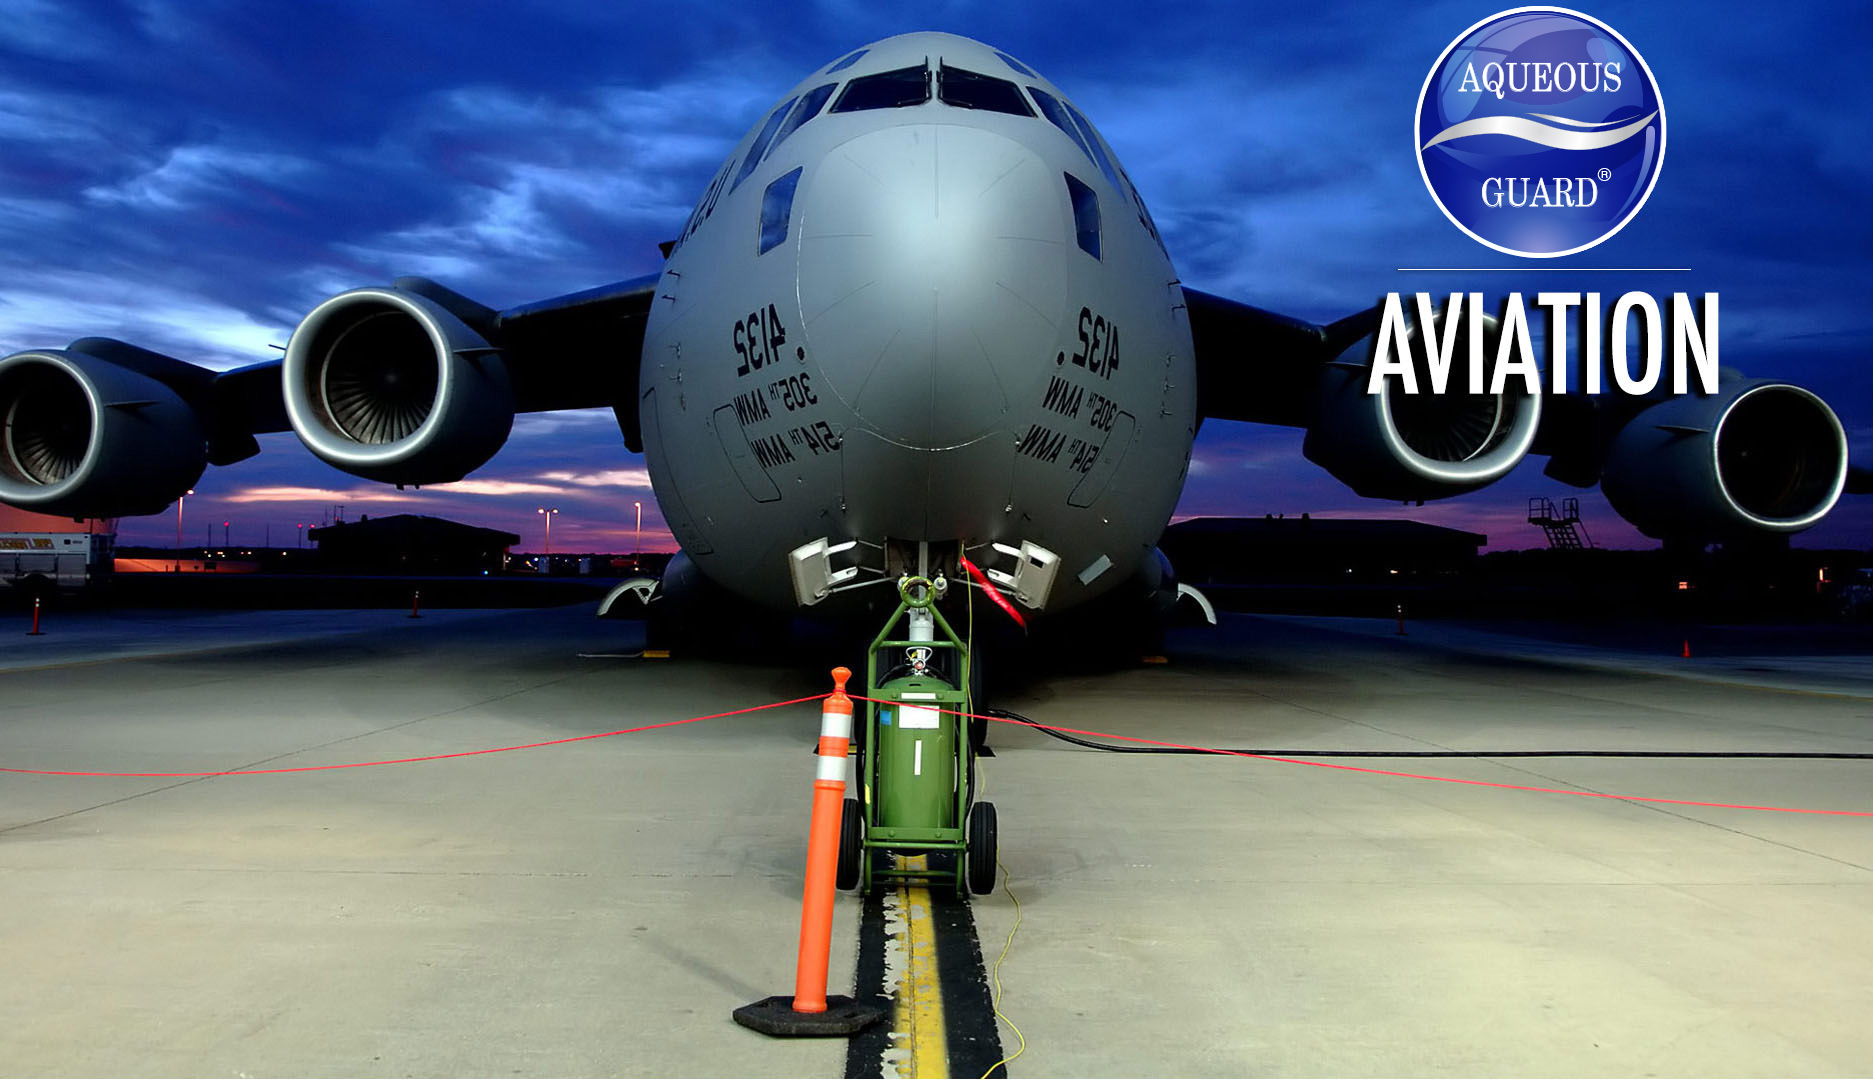 Aqueous Guard® Aviation Products